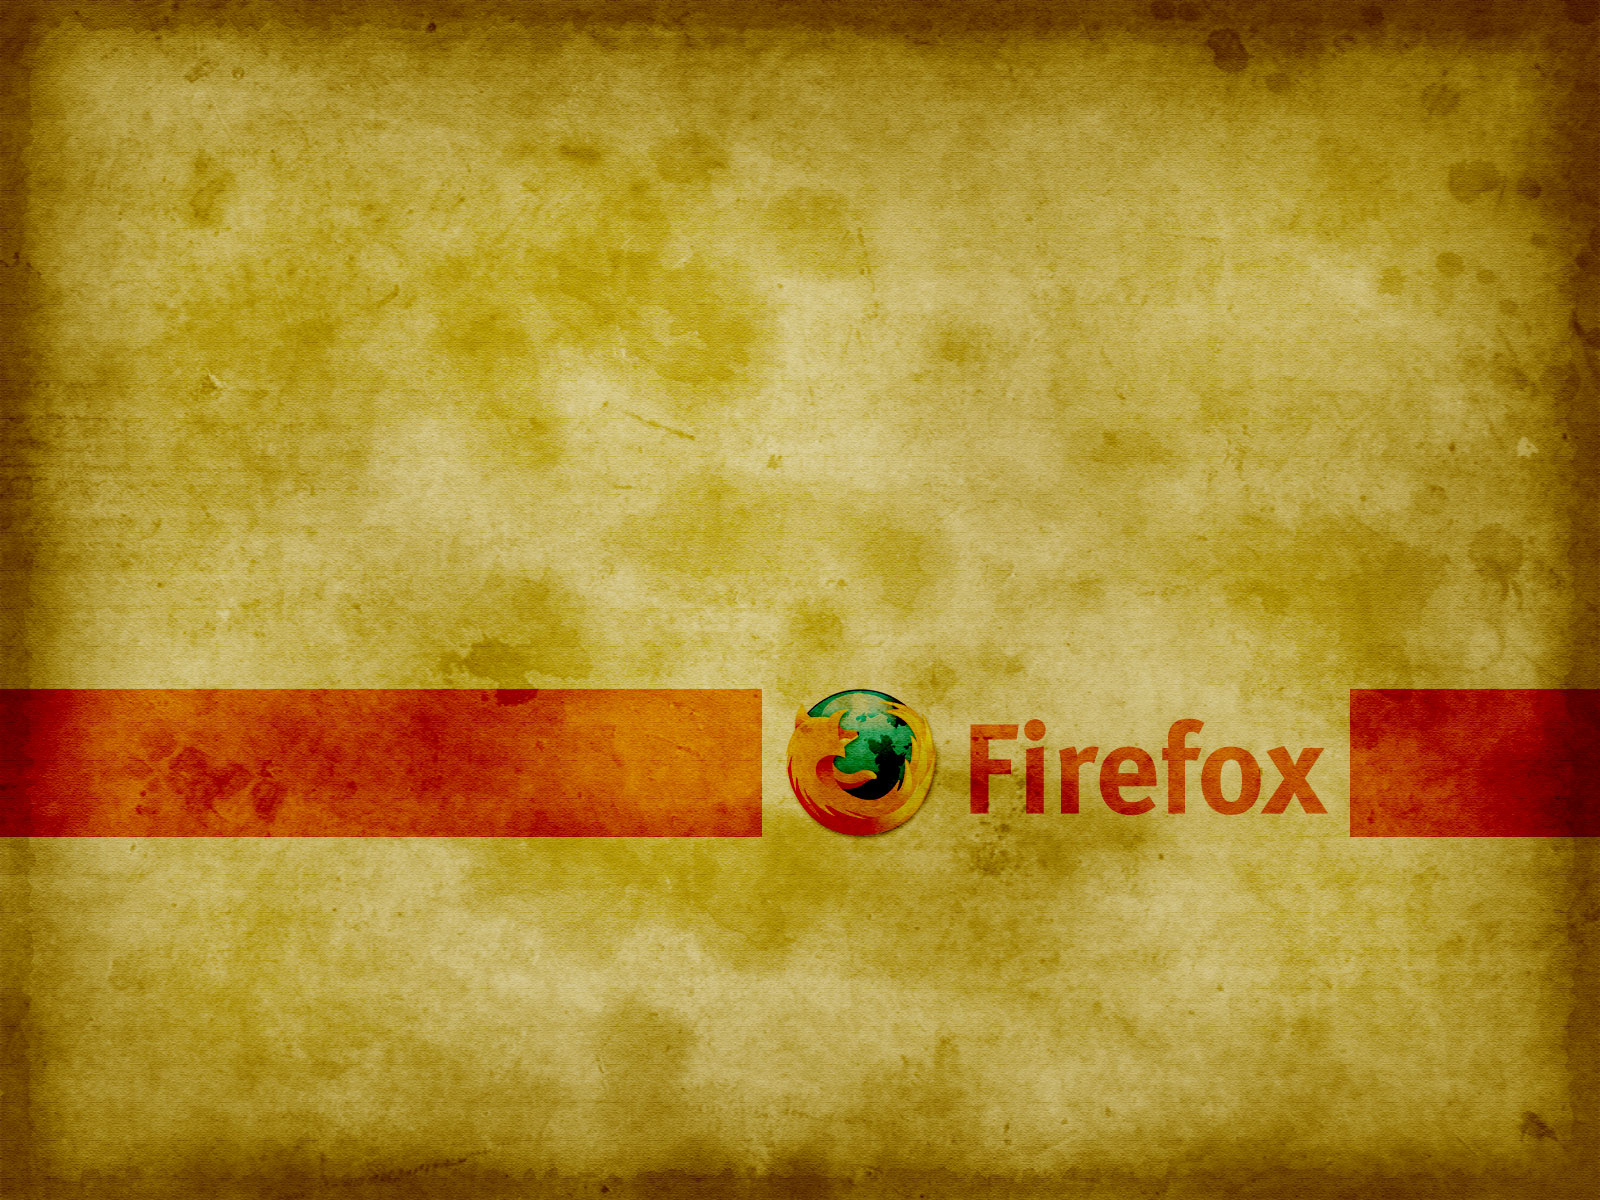 Firefox wallpaper and background image 1600x1200 id - How to change firefox background image ...